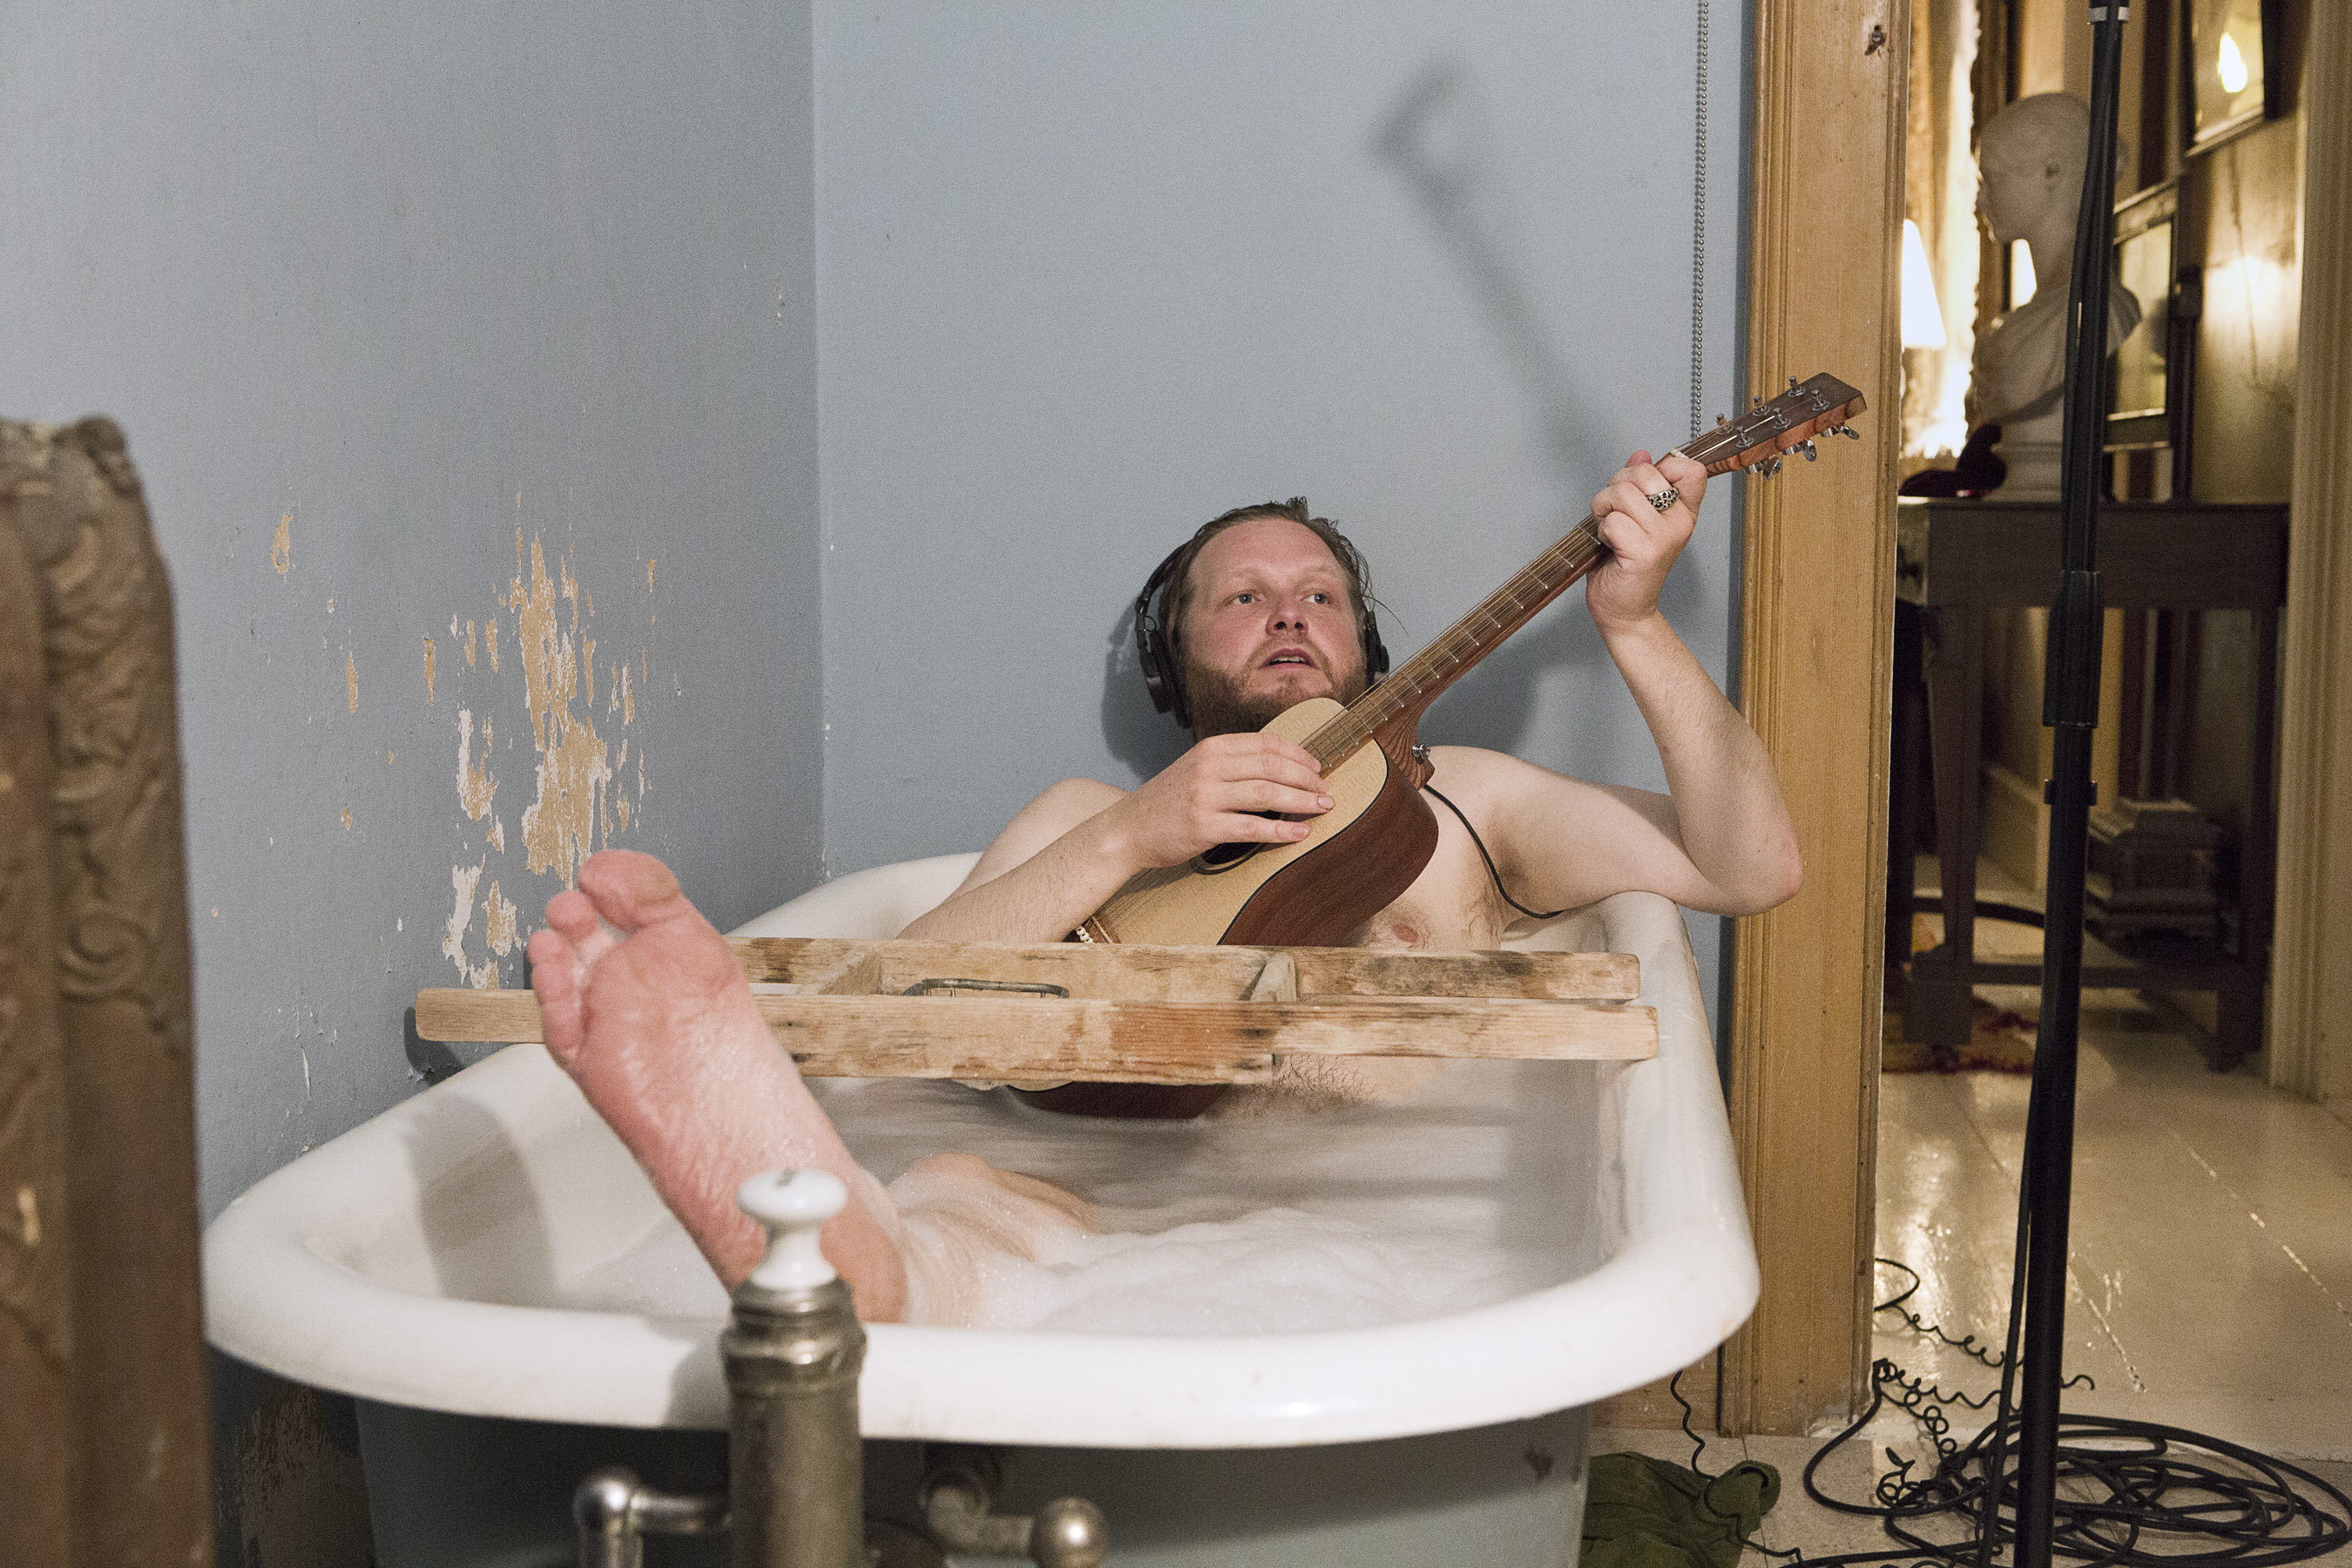 Ragnar Kjartansson. The Visitors, 2012. Nine-channel video projection, 64 minutes. Photo: Elísabet Davids. Courtesy of the artist, Luhring Augustine, New York, and i8 Gallery, Reykjavik. NOTE: The image of the man in the bathtub is an image of the artist.